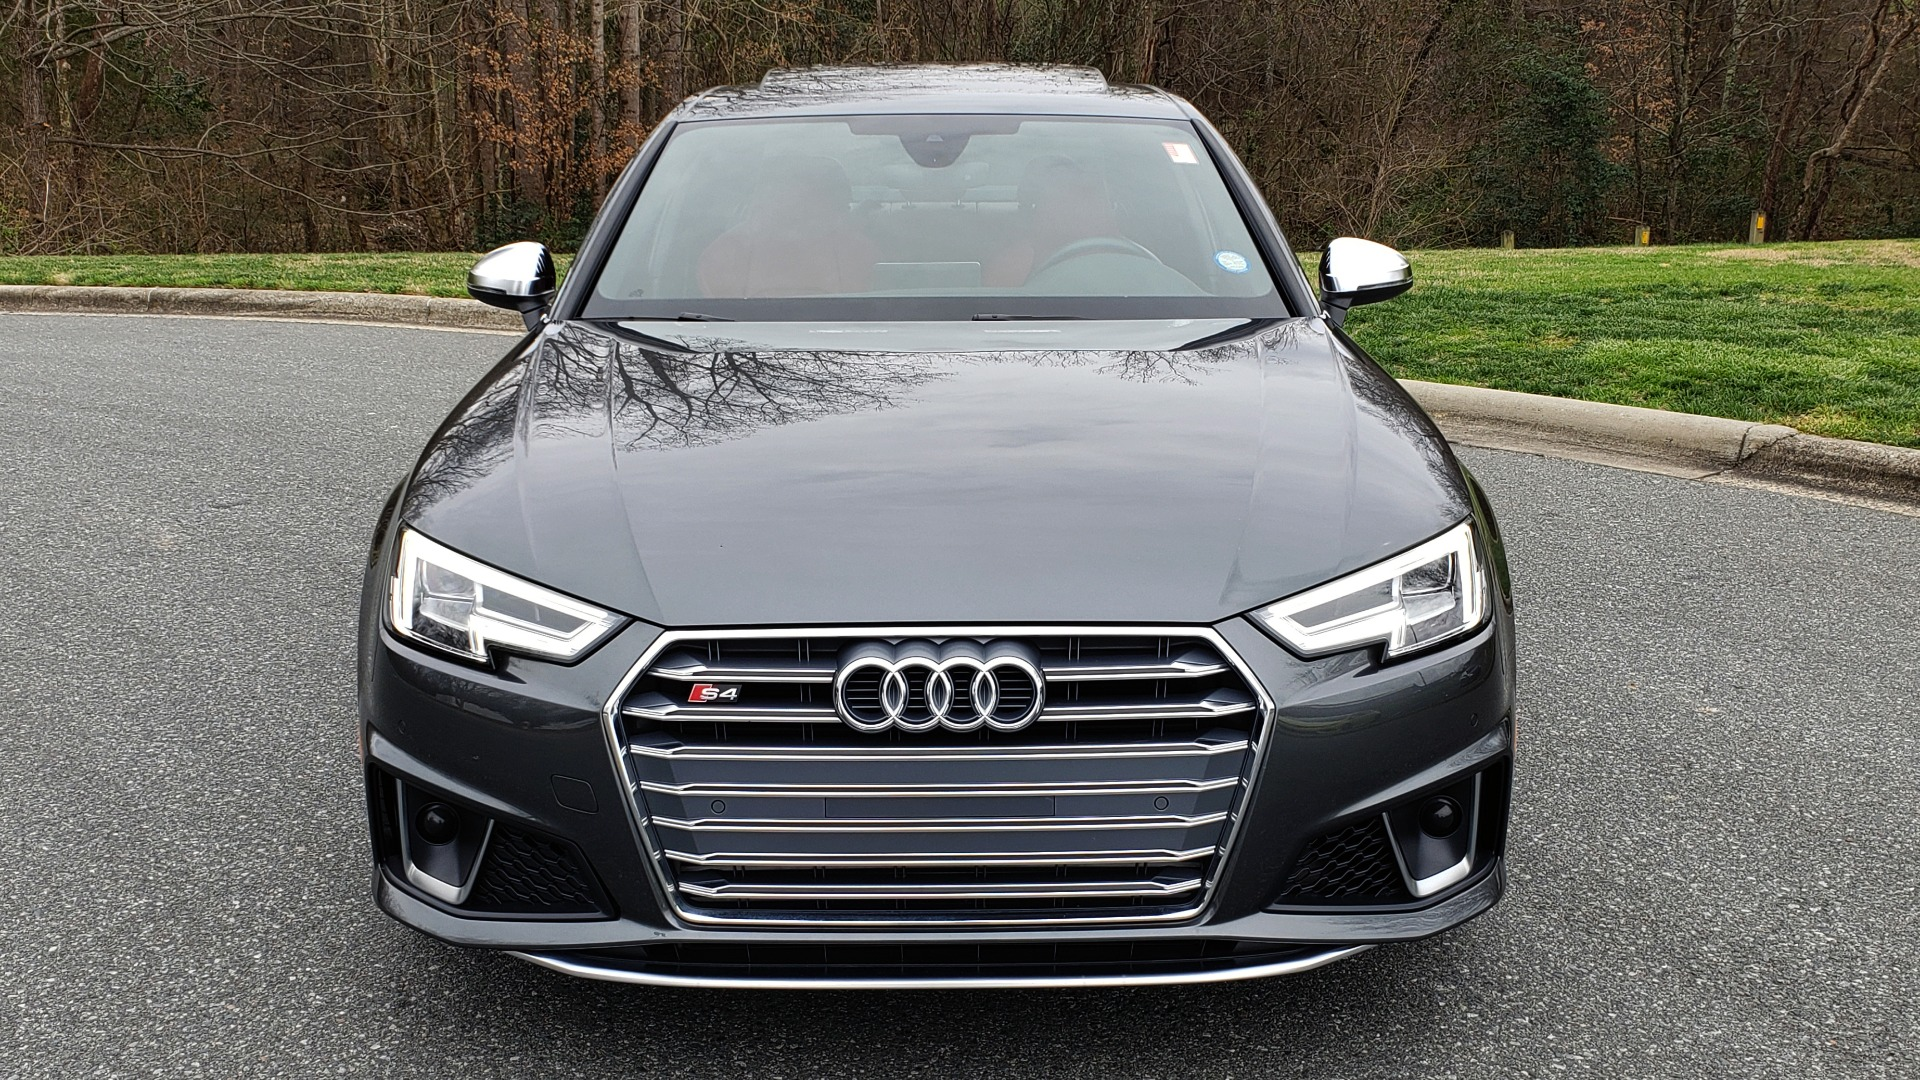 Used 2019 Audi S4 PREMIUM PLUS / AWD / NAV / SUNROOF / B&O SOUND / REARVIEW for sale Sold at Formula Imports in Charlotte NC 28227 20